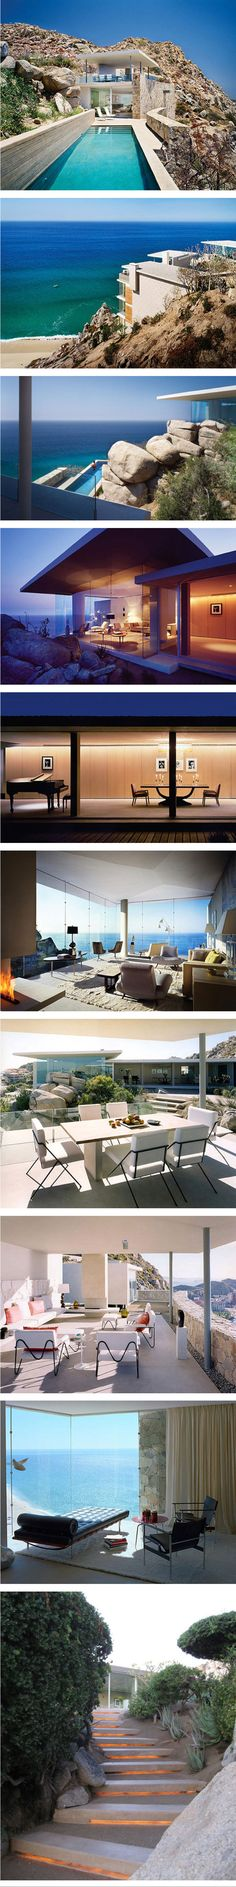 Casa Finisterra, Cabo San Lucas, Mexico http://freshome.com/2012/04/24/stunning-private-residence-overlooking-sparkling-waters/